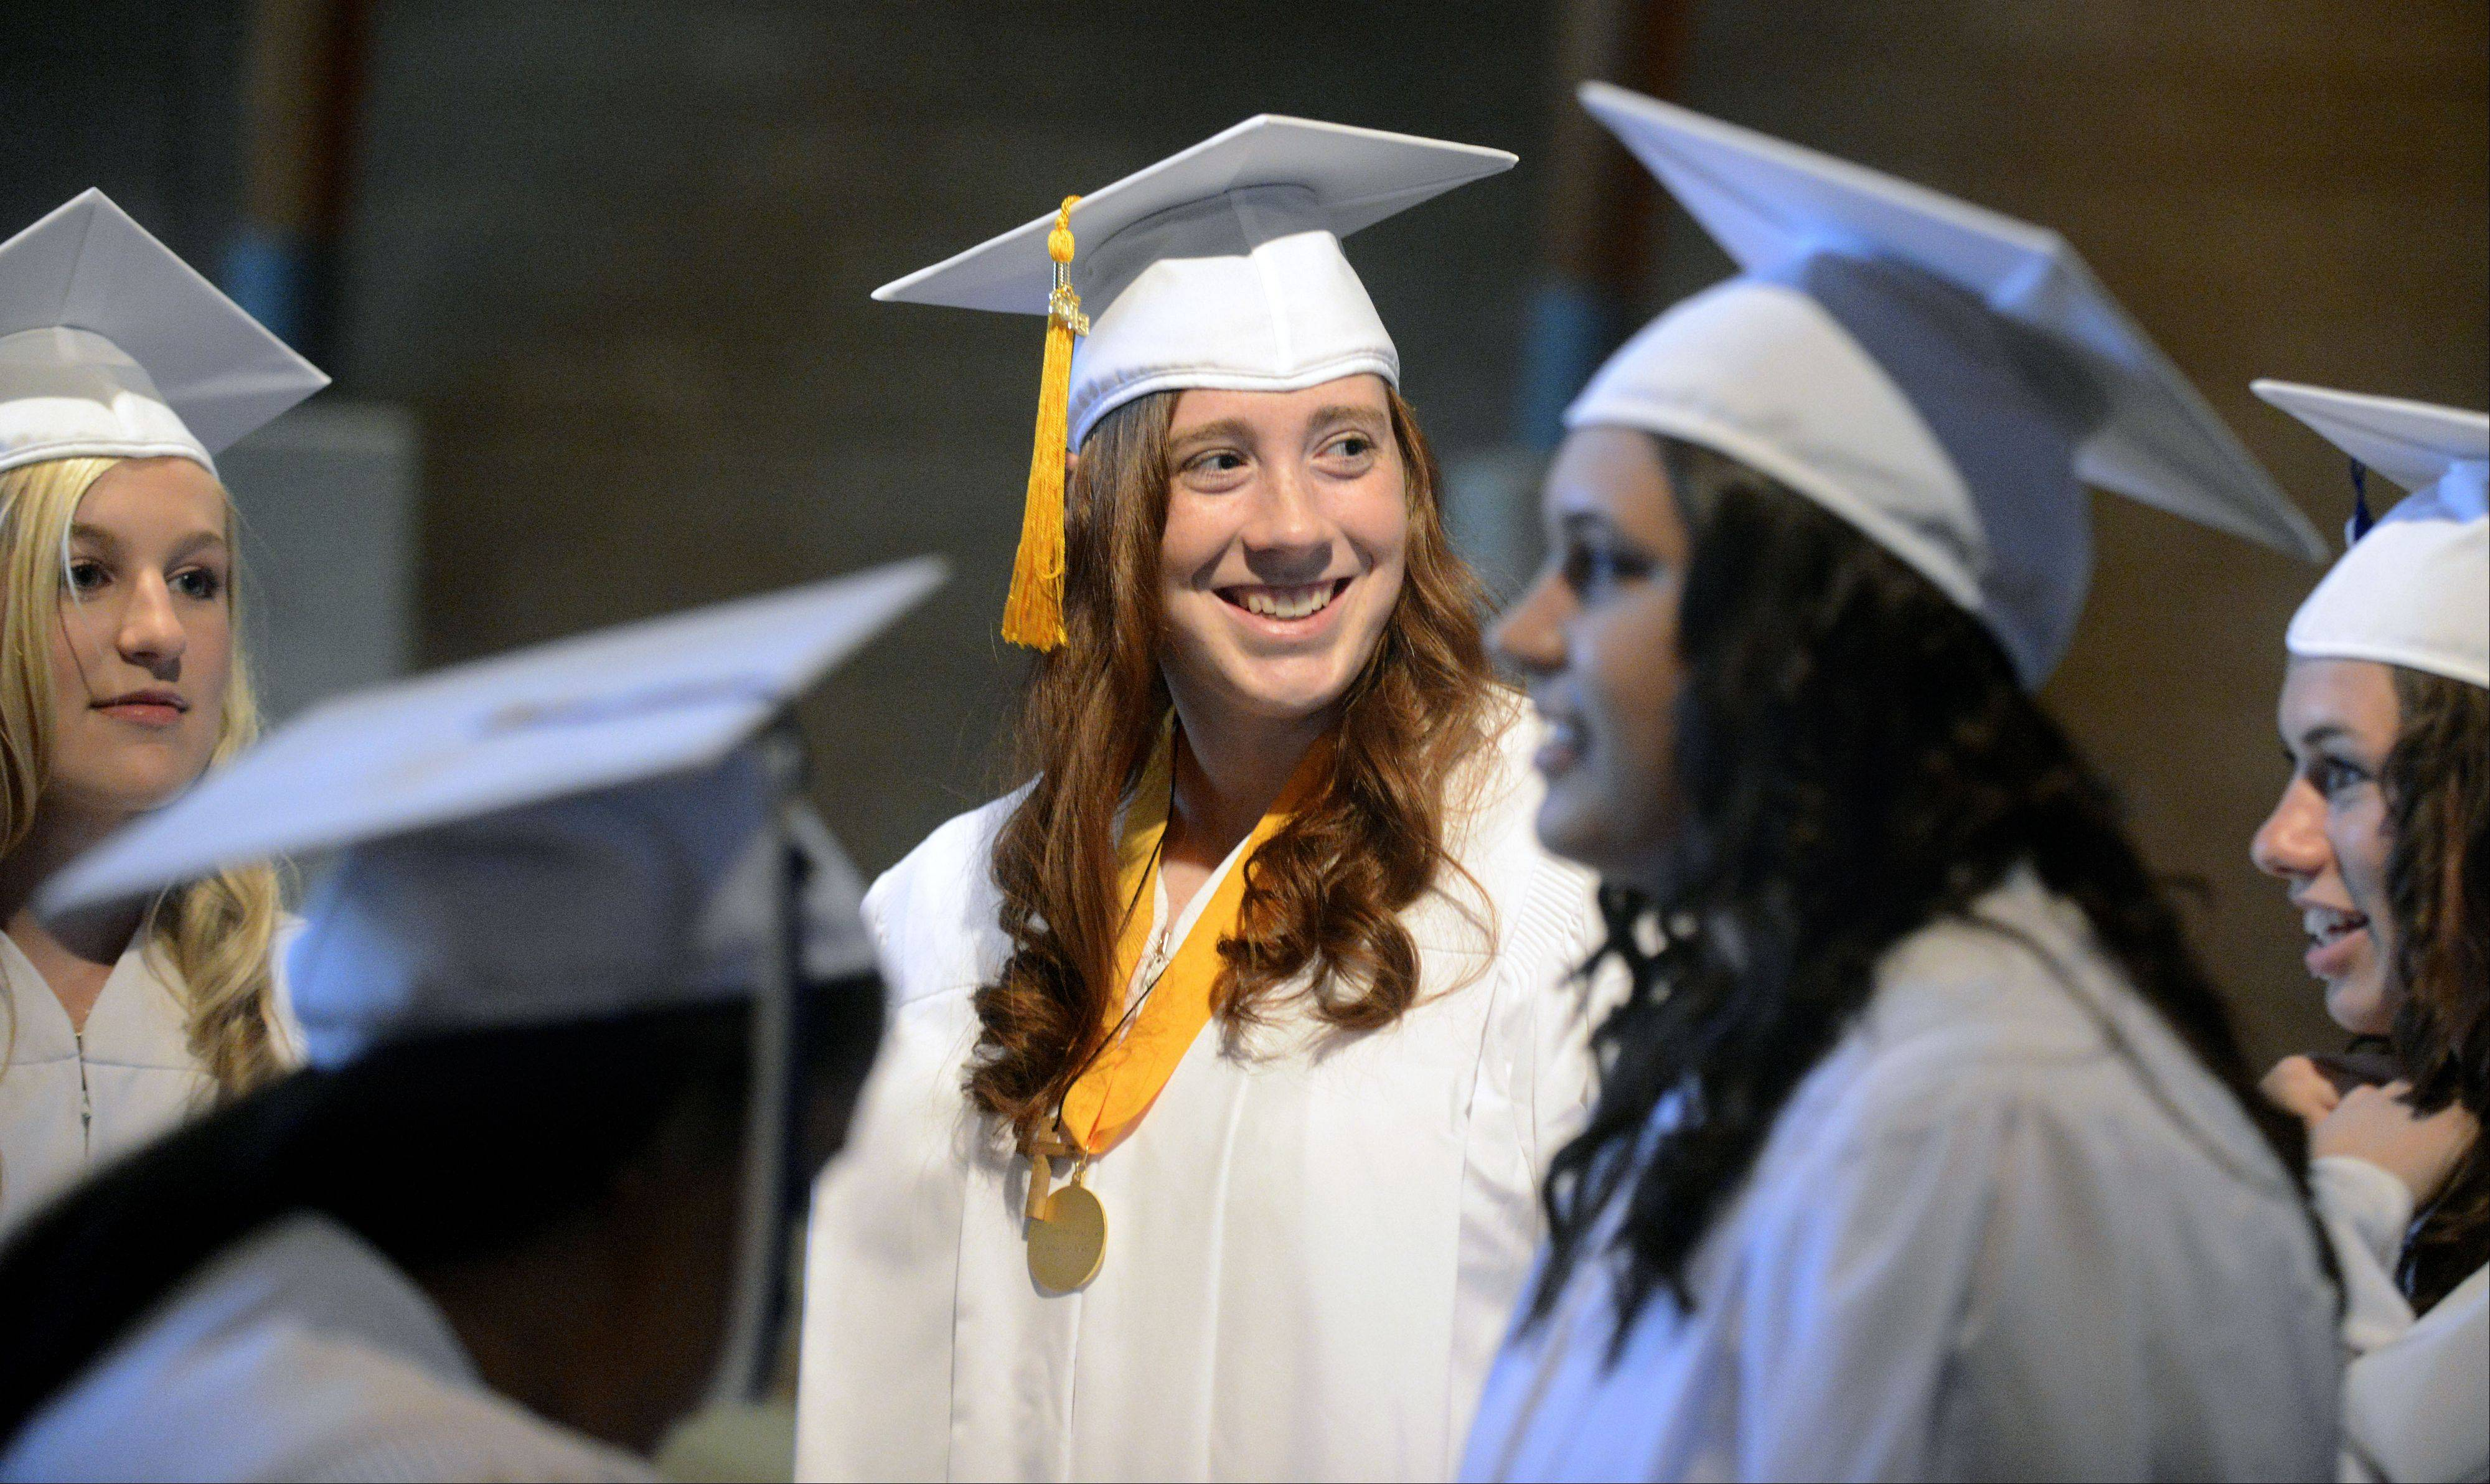 Jennifer Heweitt, 18, of Batavia, smiles as classmates have their photos taken .